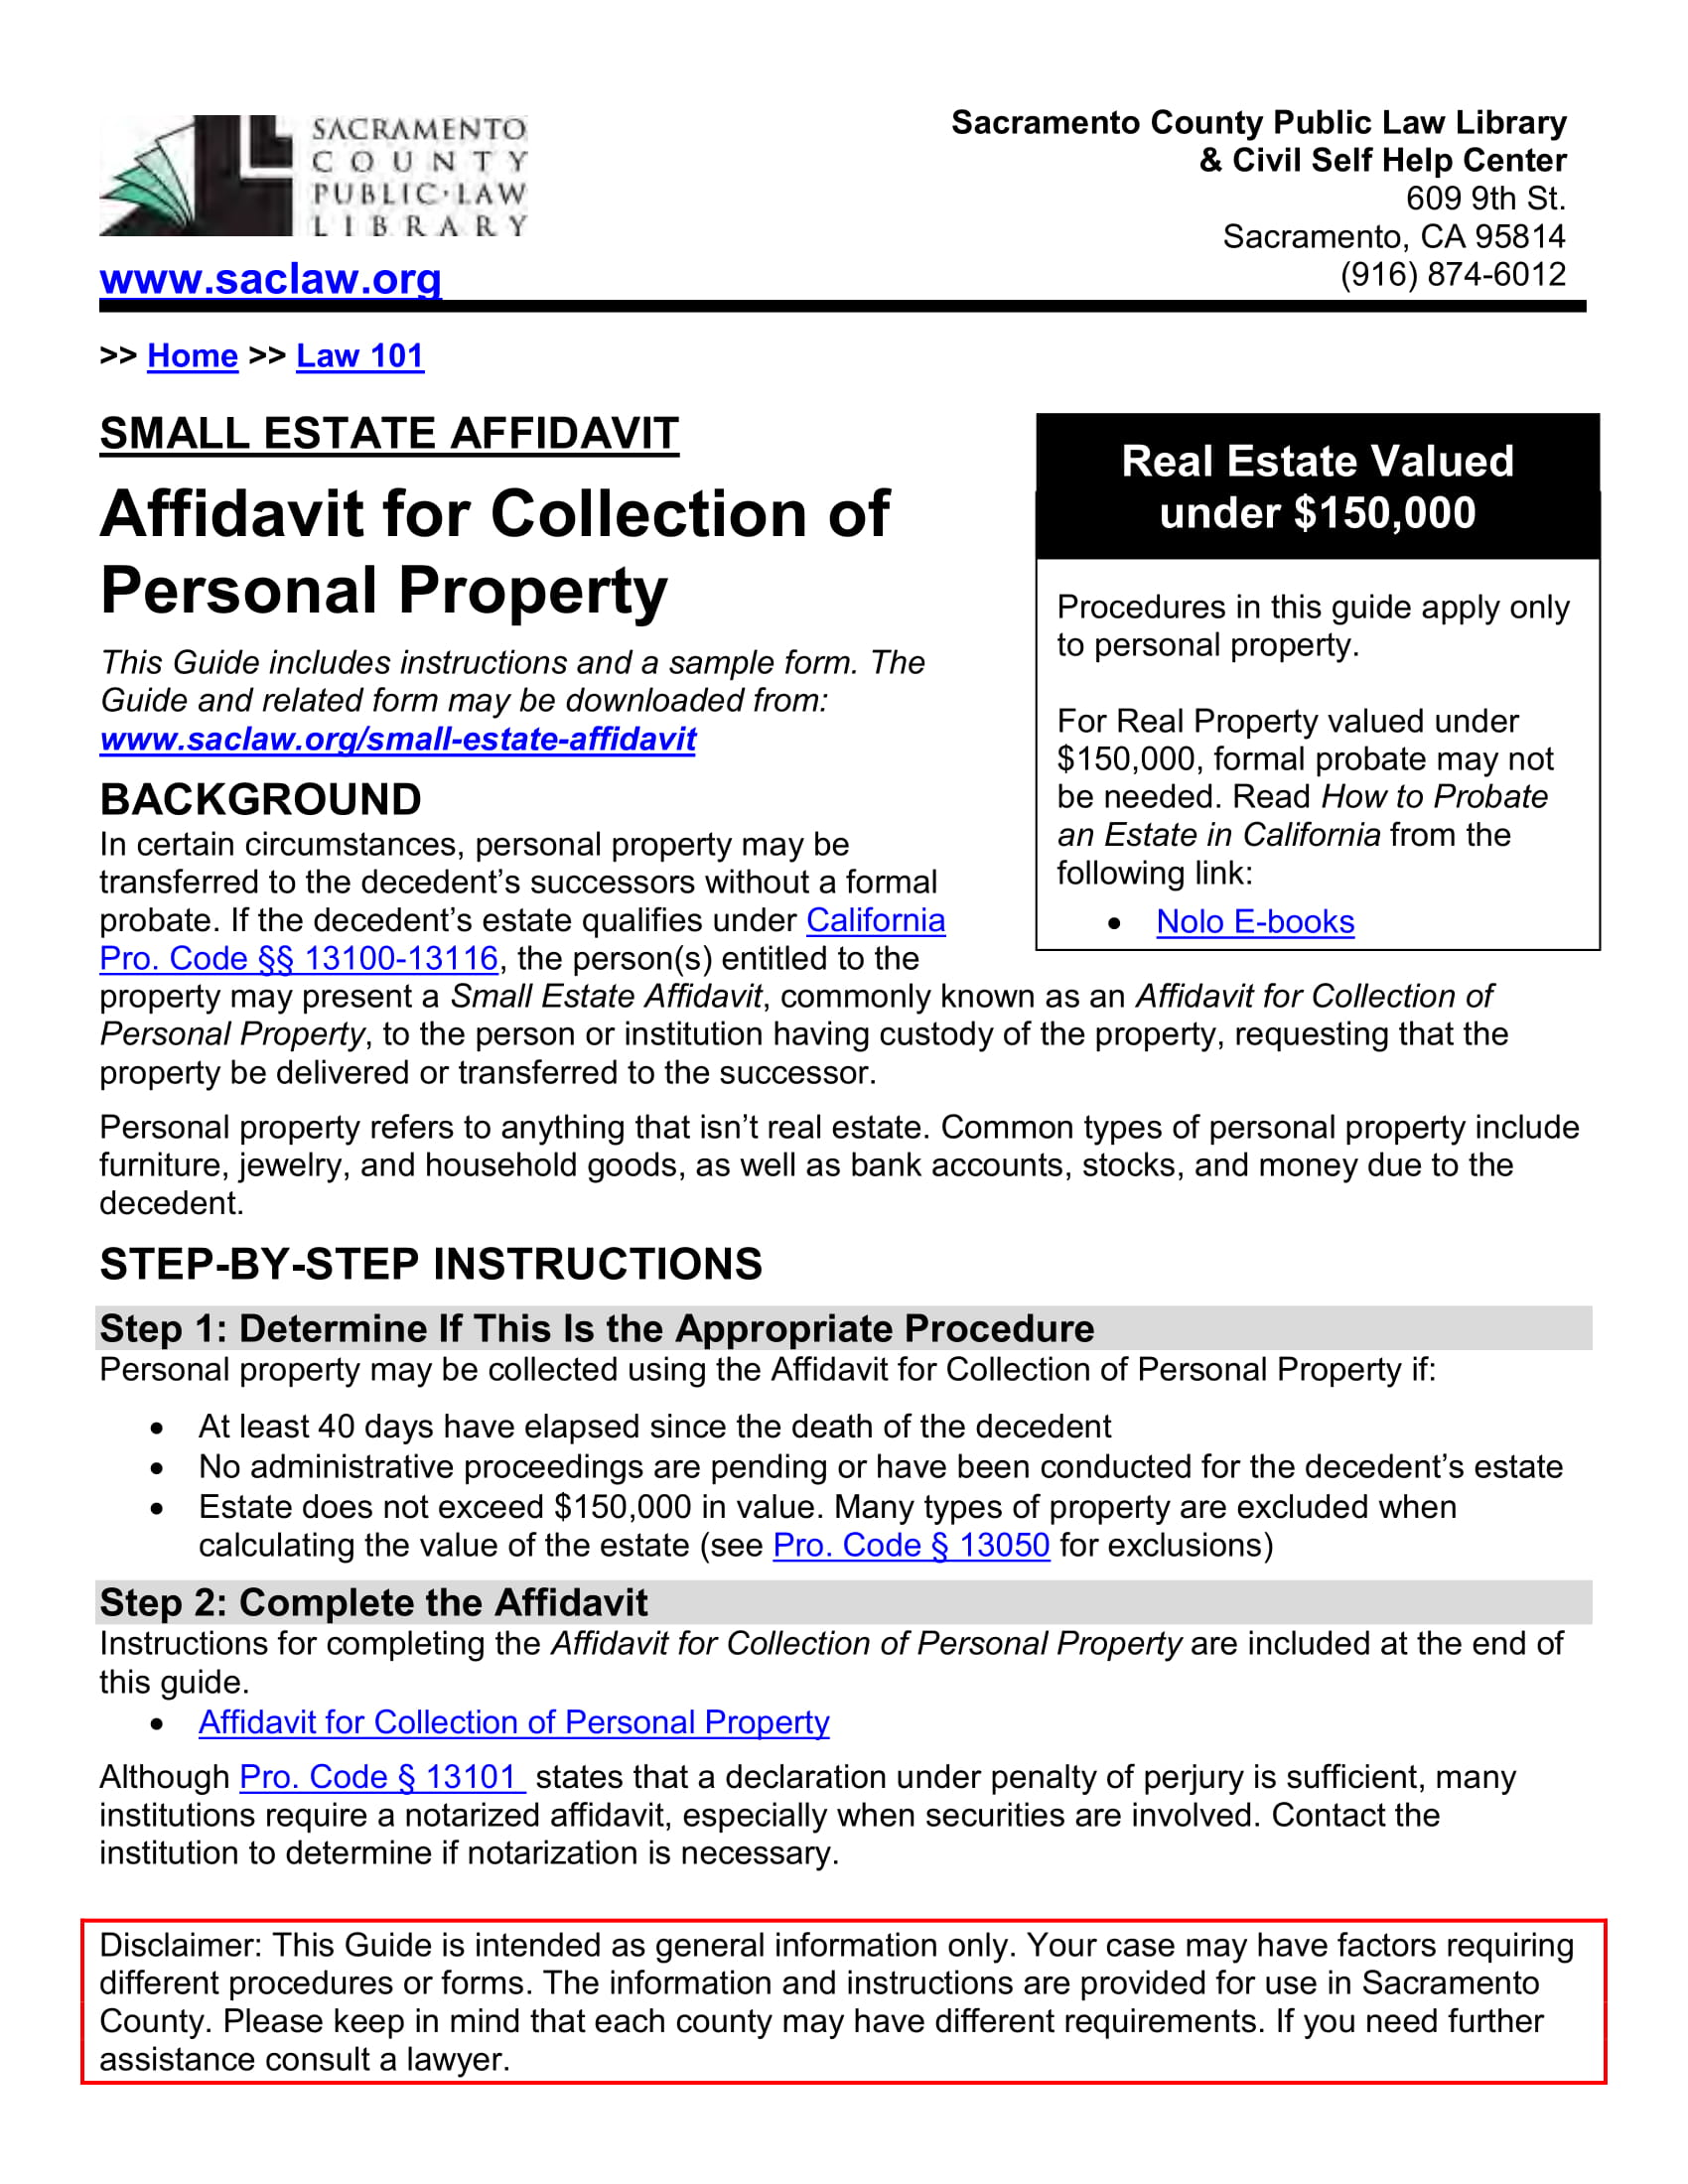 small estate affidavit sacramento